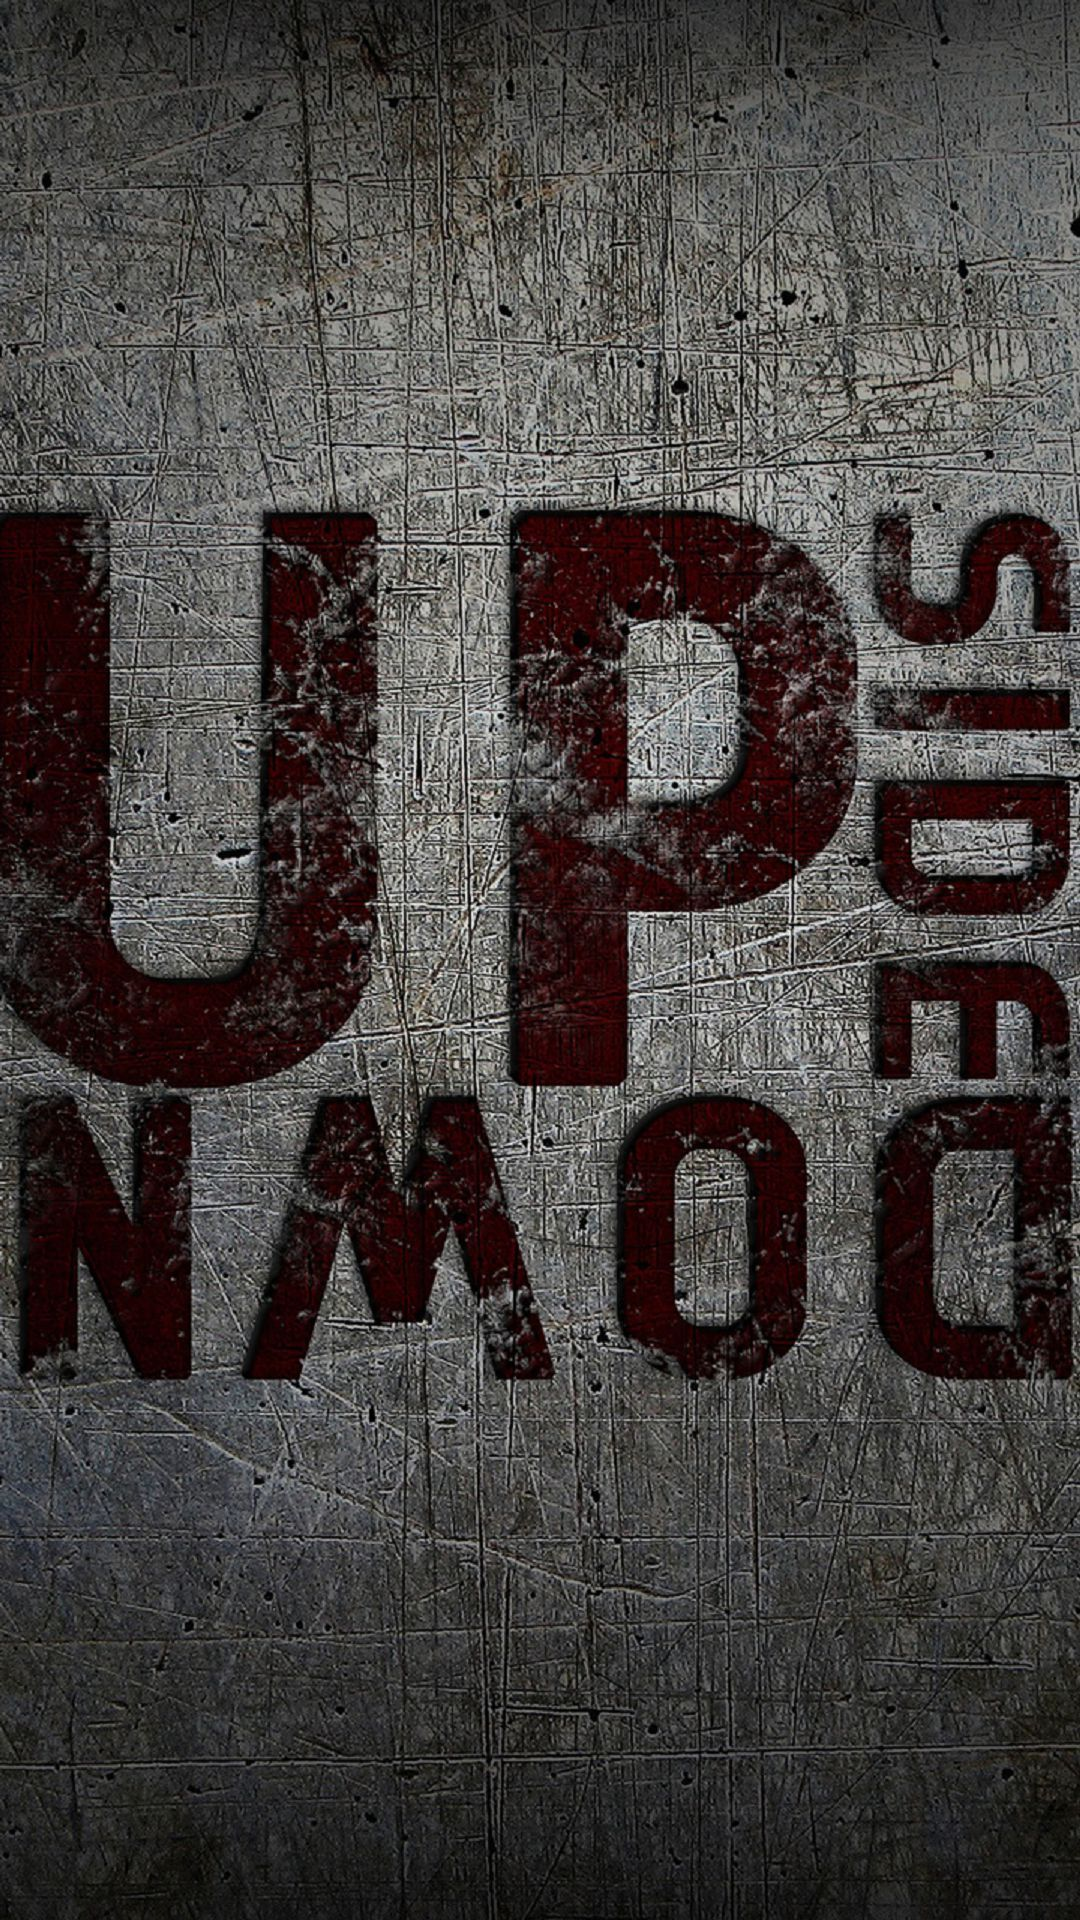 upside down android wallpaper